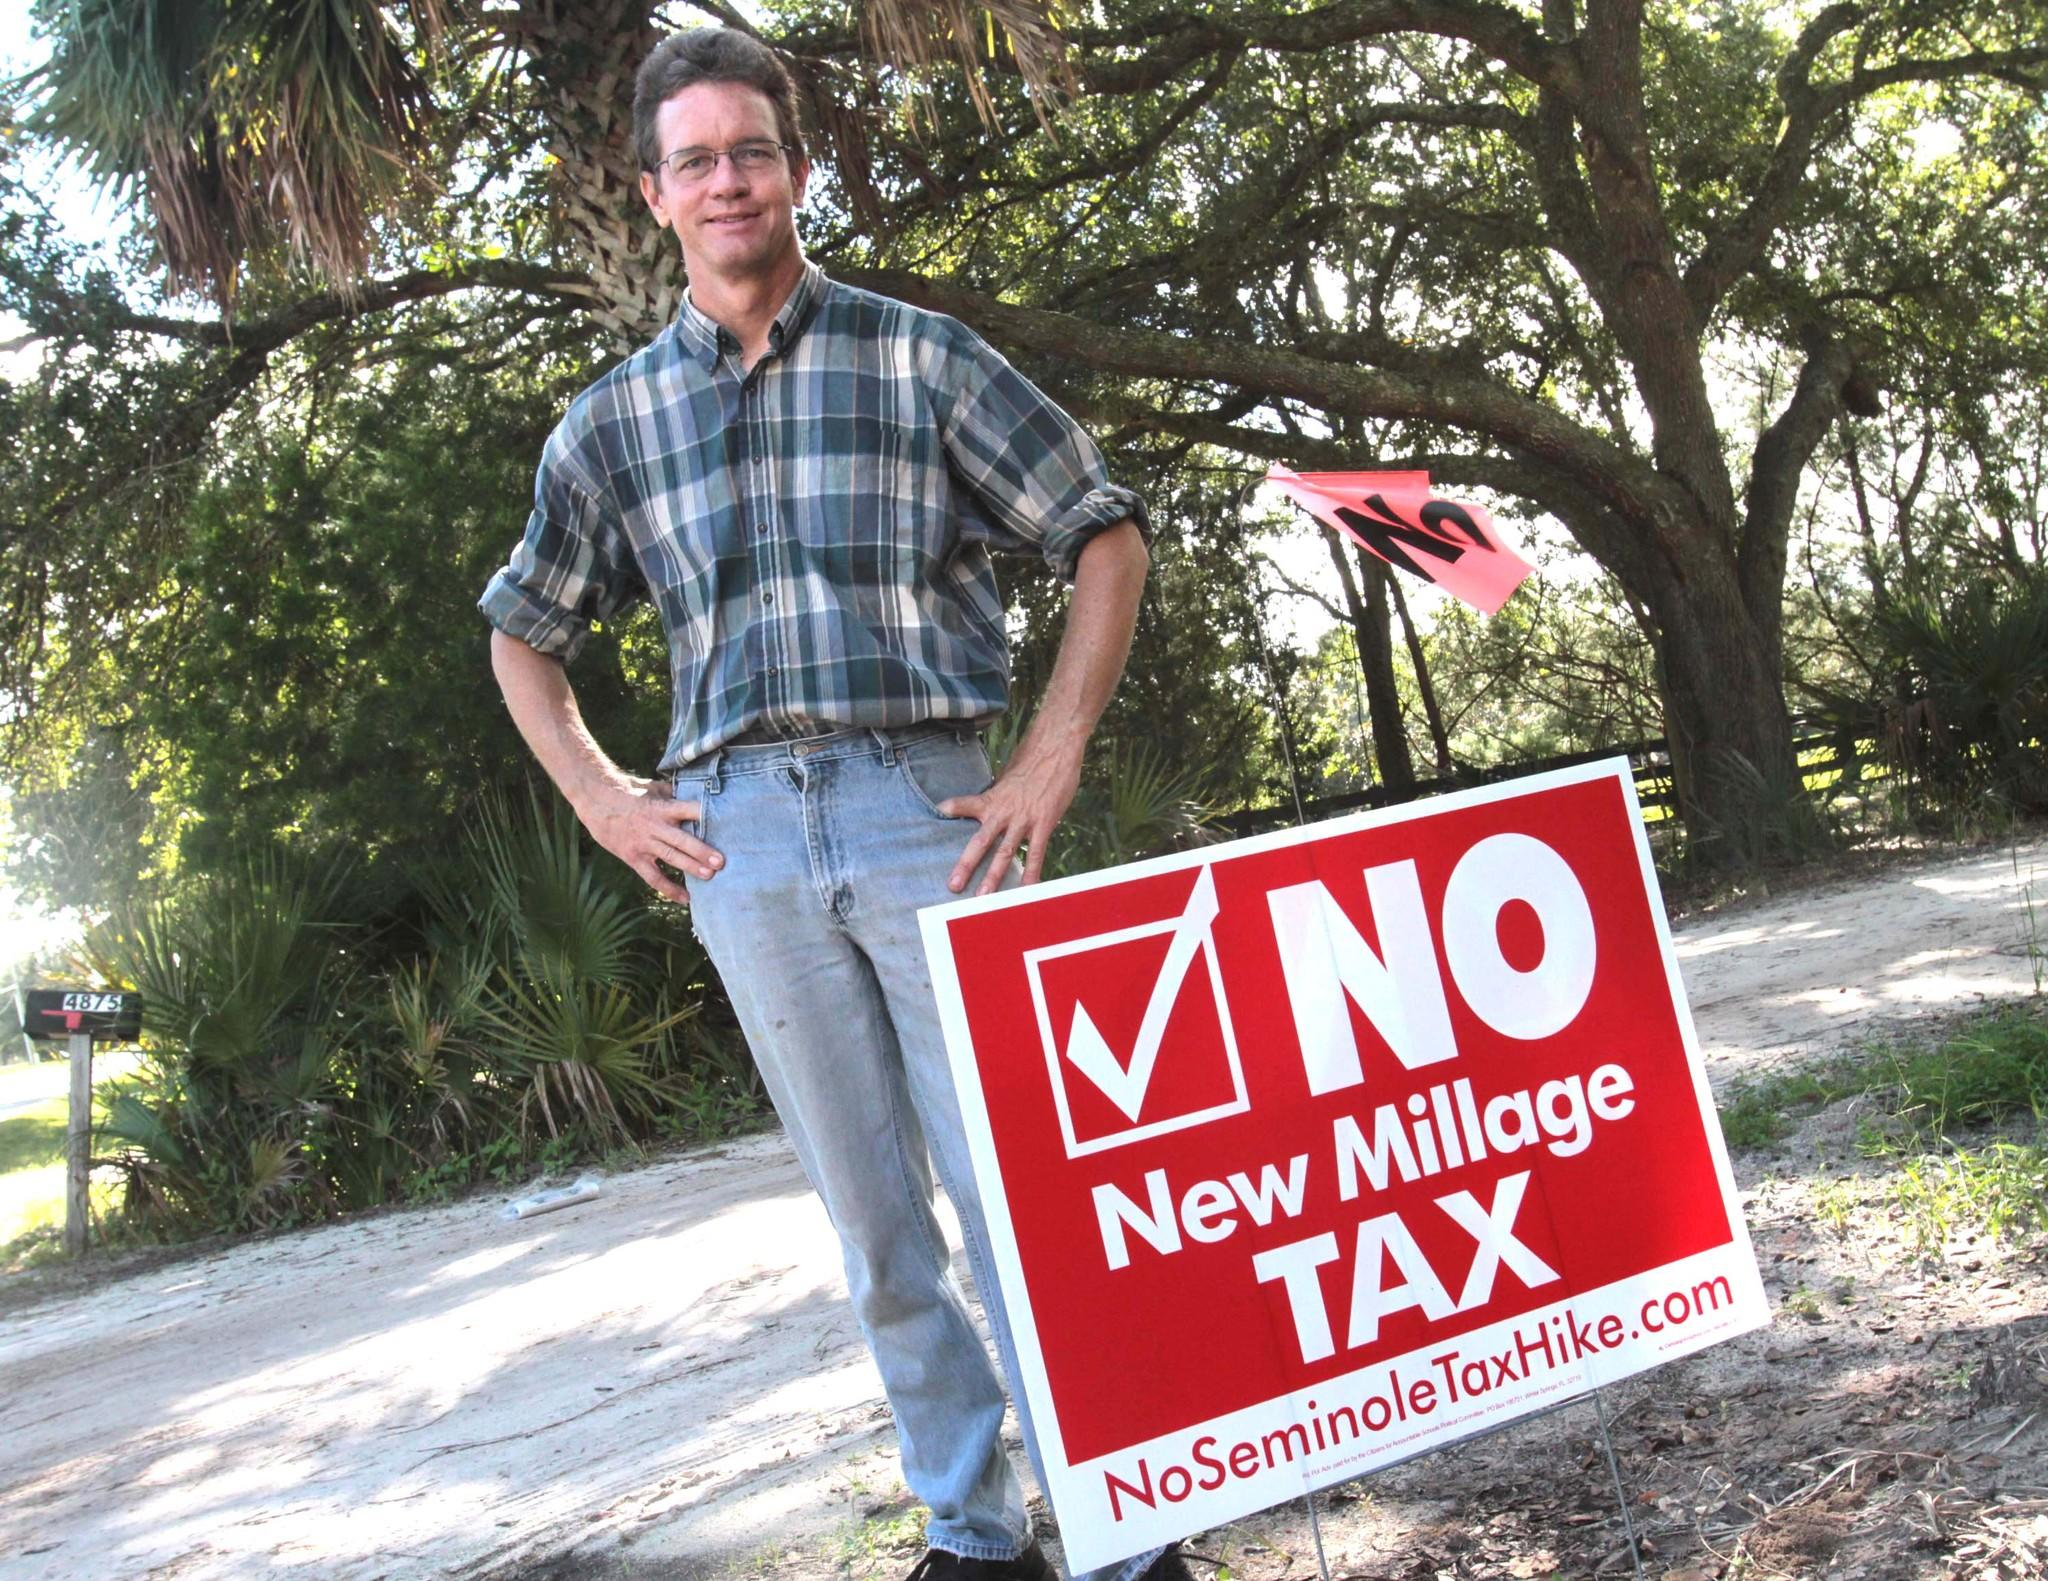 Grant Maloy, business owner, Gabriella Growers nursery off Tuskawilla Road stands by his sign against the tax increase for Seminole Schools. Sept 28, 2012 B582404025Z.1 (George Skene/Orlando Sentinel)